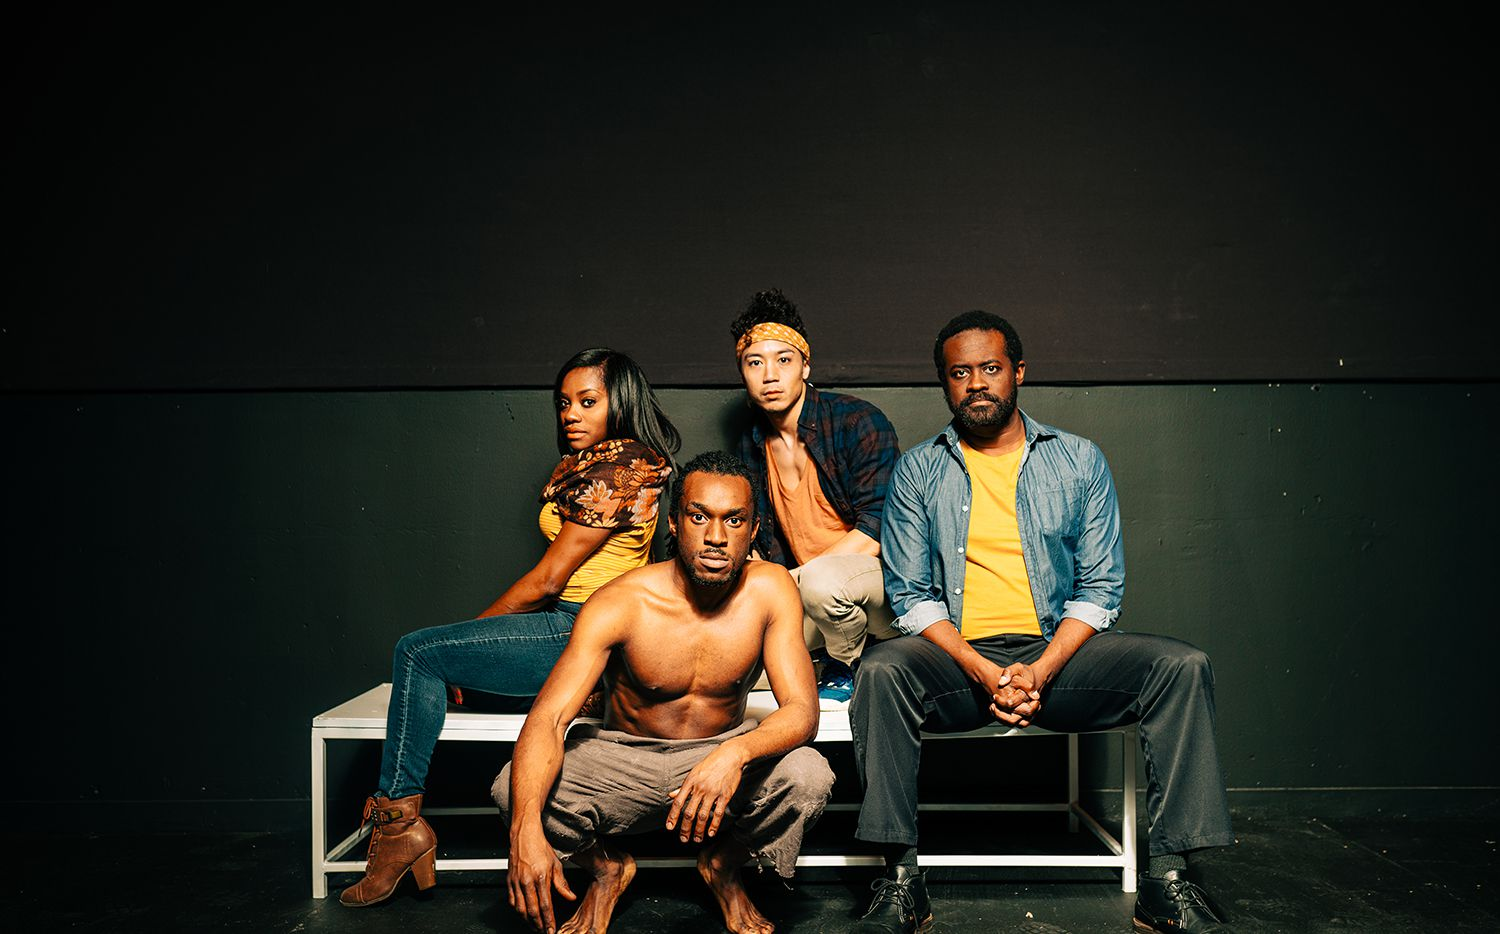 """Kristen D'sha, McClendon 'Mickey' Giles, Christopher Lew and Sam Henderson from Second Thought Theatre's """"Mlima's Tale,"""" which ran in 2020 before the pandemic at the Kalita Humphreys Theater. Second Thought is one of the arts organizations that is supporting the Save Our Stages bill."""